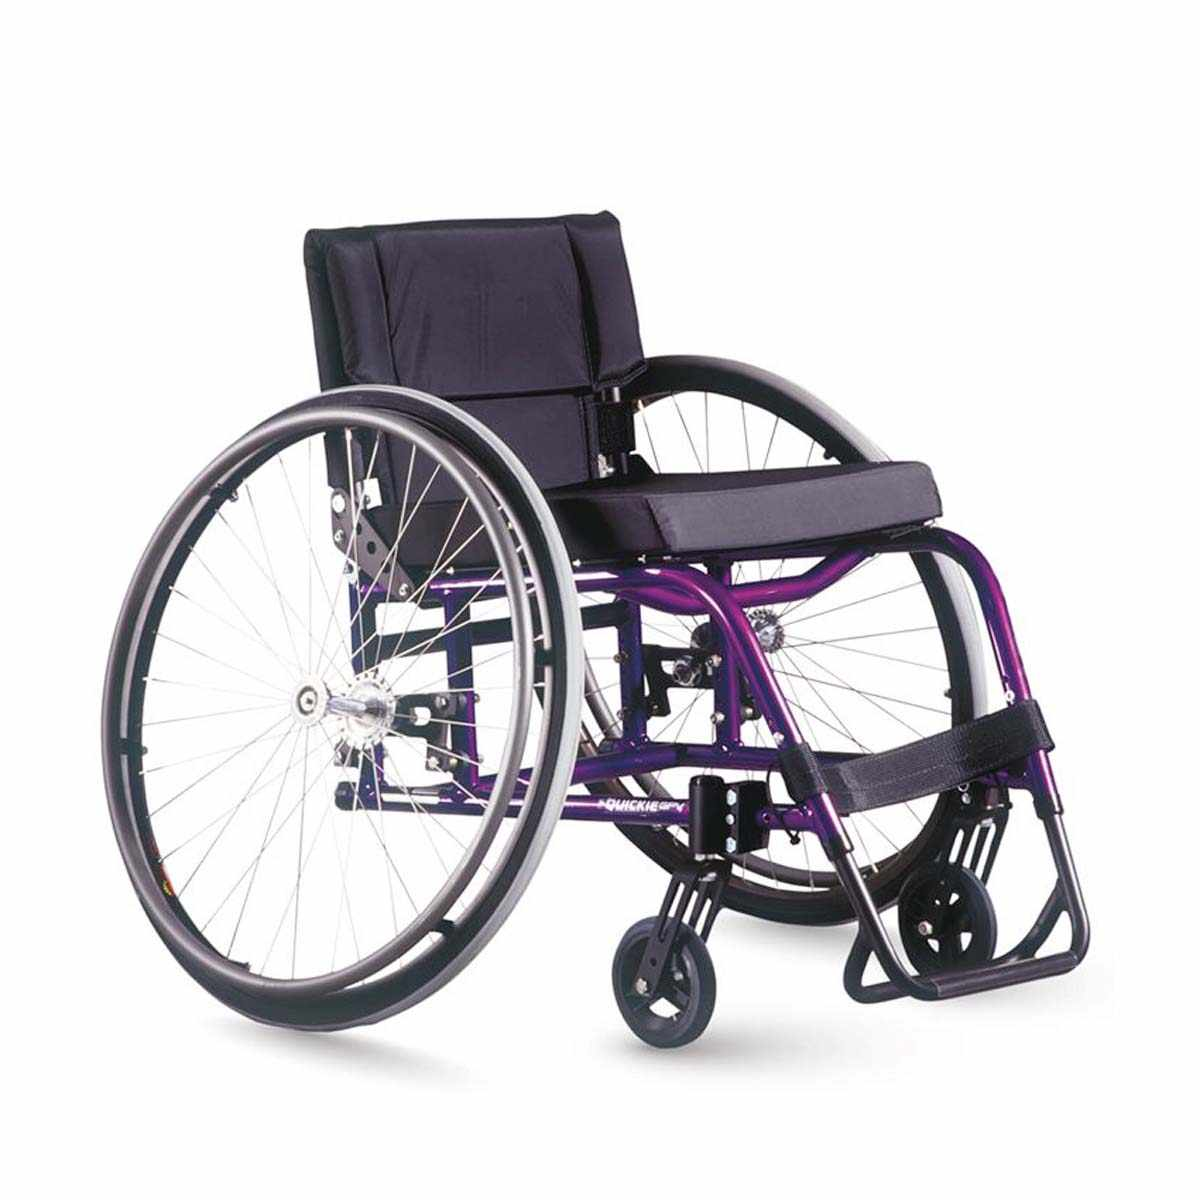 Quickie GP/GPV ultralight manual wheelchairs